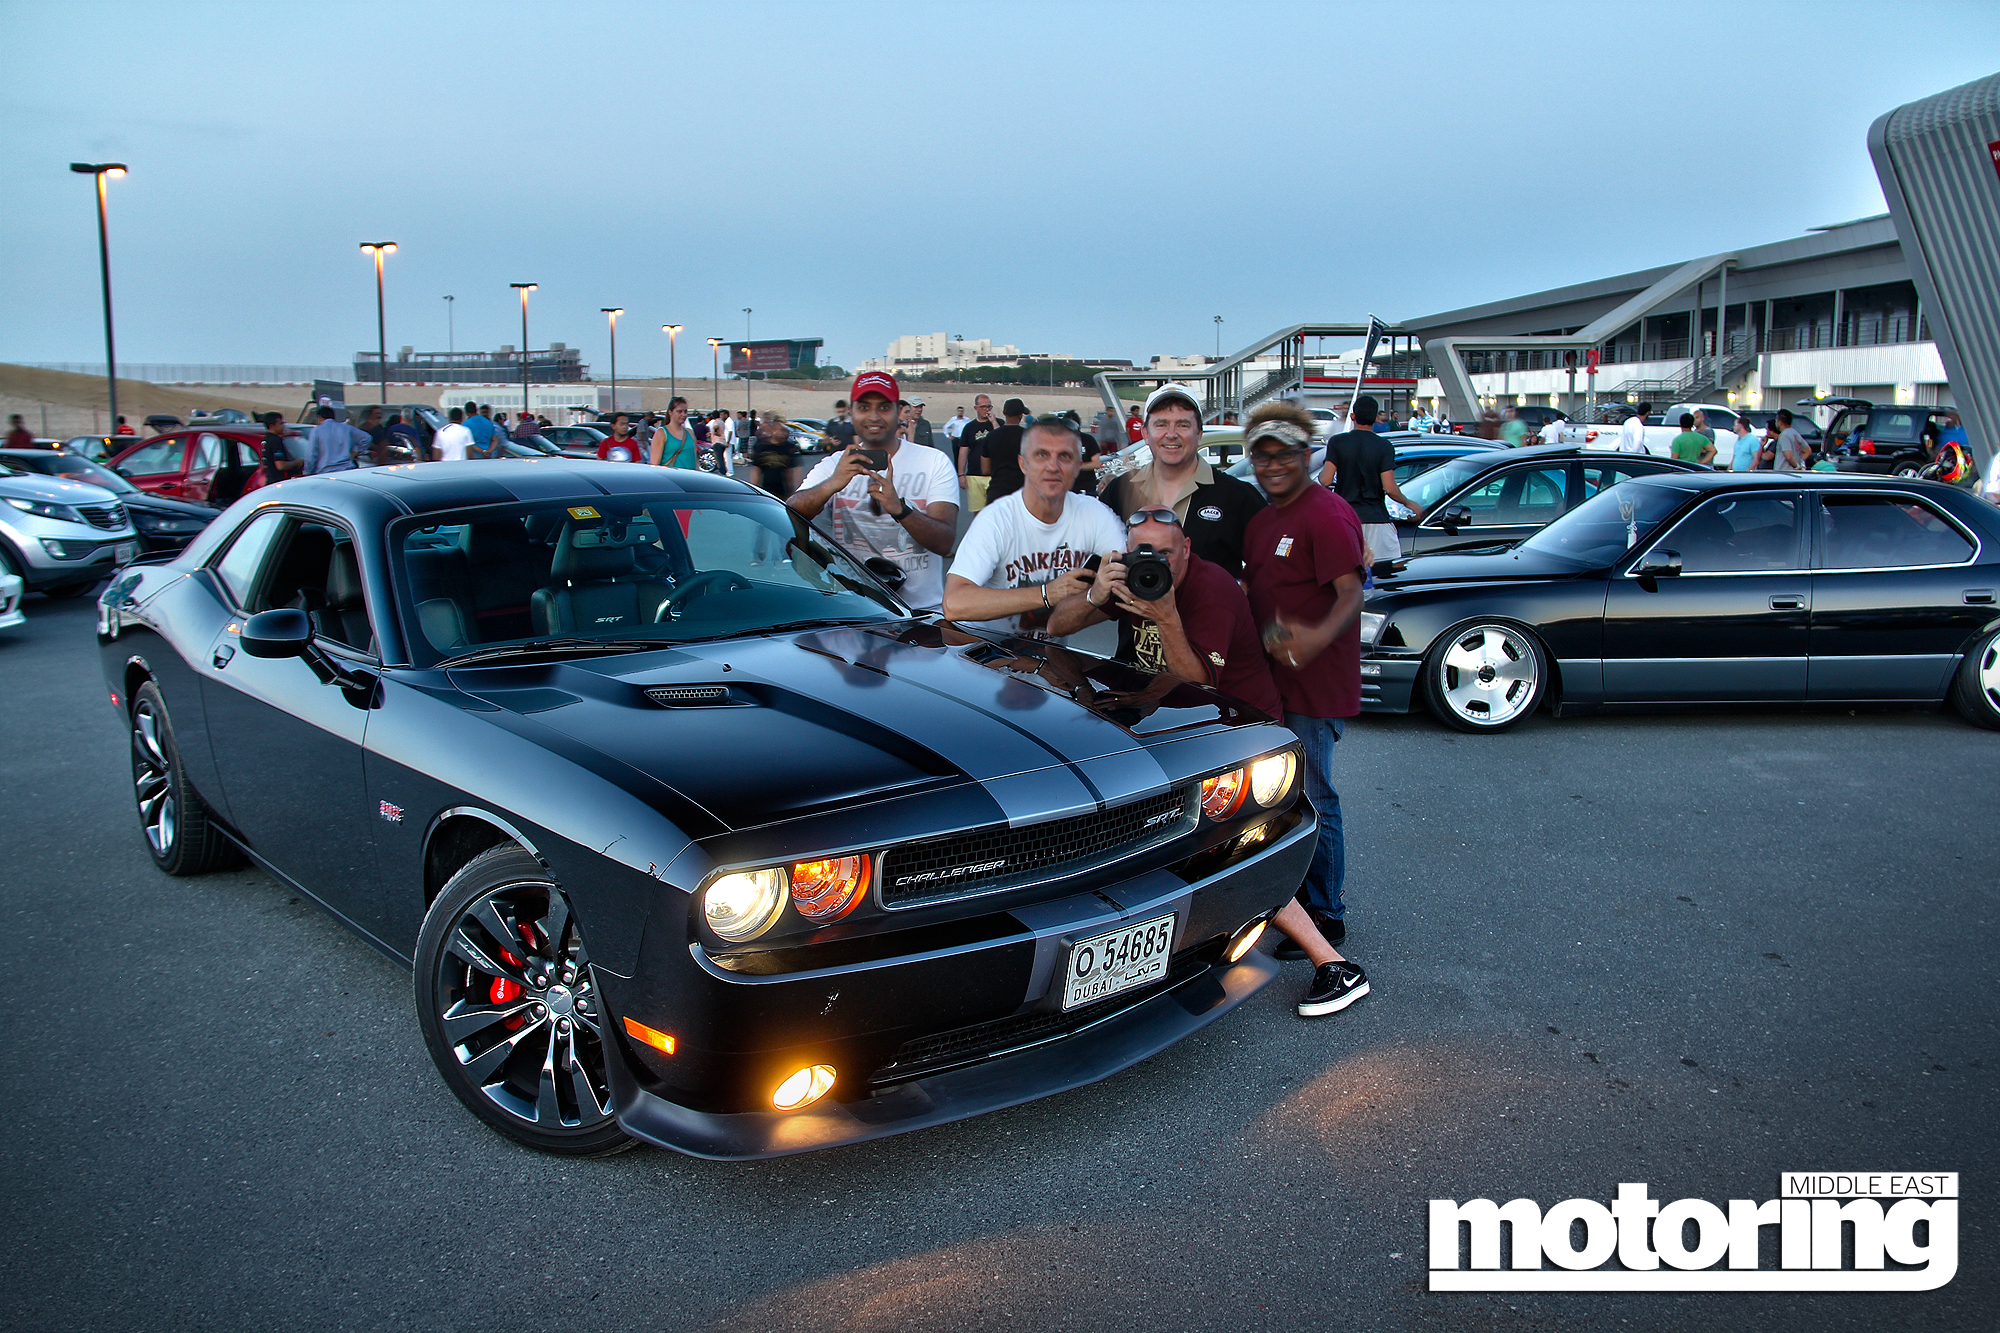 Editorial Image Challenger Rt St Liboire August Front Side View Yellow Dodge White Stripe Mopar Convention Image43570690 moreover Mopar Cold Air Intake Kit 2011 Dodge Challenger Charger 300 Srt8 64l Hemi 77070043 Pi 4514 also Foto Exo Terbaru 2014 further Carta De Dios De Dios Para Ti as well Exterior 45028781. on 2014 challenger srt8 392